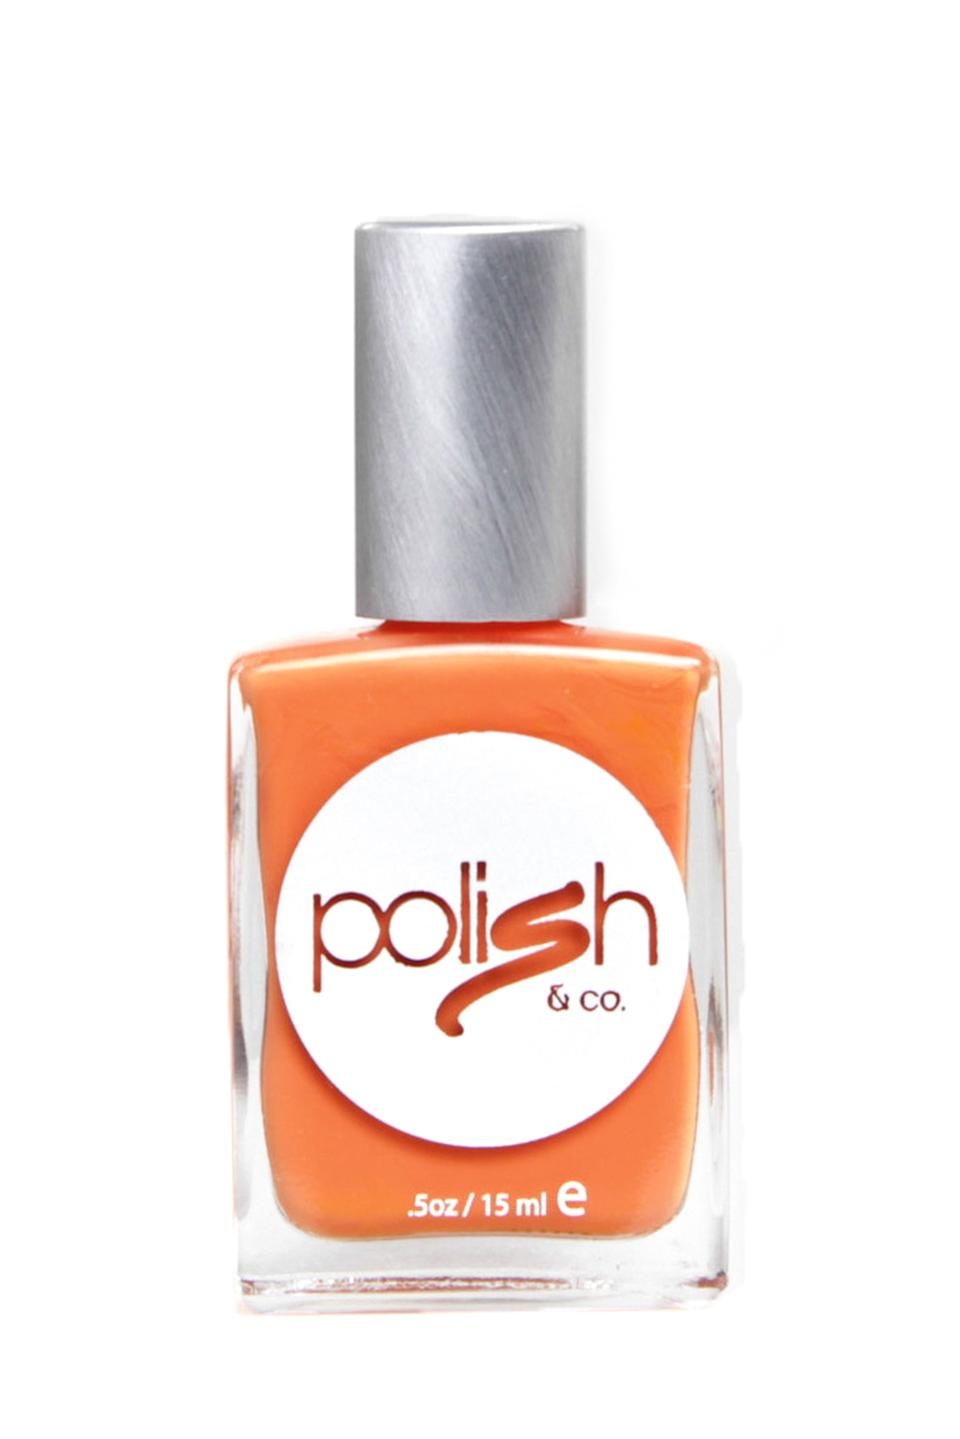 """<h3>Polish & Co Dreamsicle</h3><br>Creamsicle might sound too summer-y, but this polish actually has a hint of a warm-red undertone that gives it a foliage vibe.<br><br><strong>Polish & Co</strong> Dreamsicle, $, available at <a href=""""https://go.skimresources.com/?id=30283X879131&url=https%3A%2F%2Fpolishandco.com%2Fdreamsicle%2F"""" rel=""""nofollow noopener"""" target=""""_blank"""" data-ylk=""""slk:Polish & Co"""" class=""""link rapid-noclick-resp"""">Polish & Co</a>"""